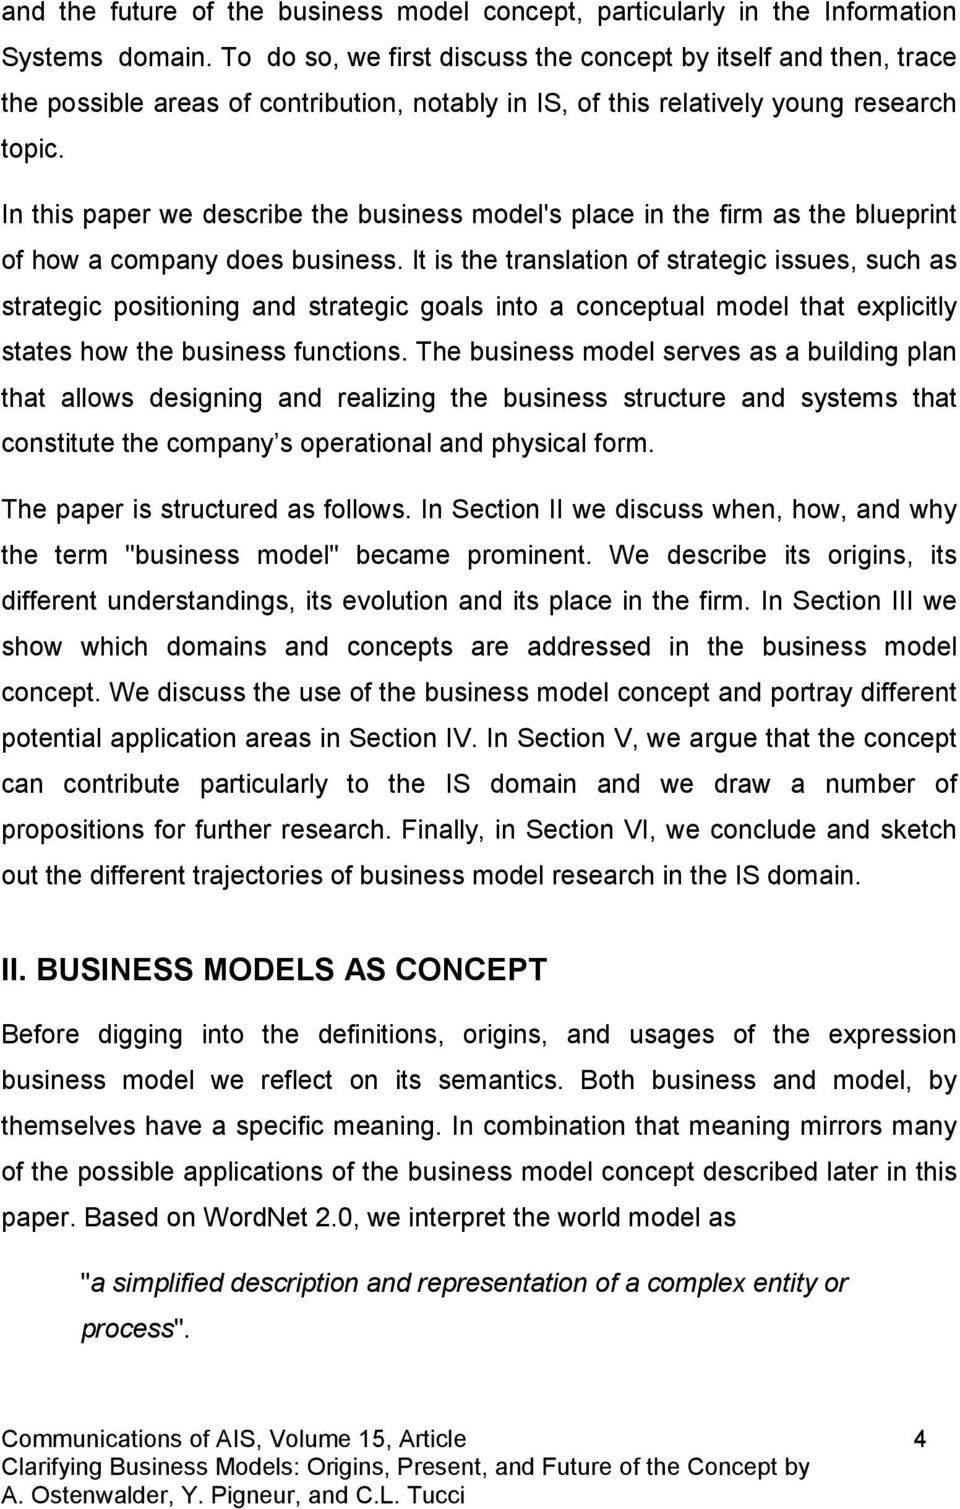 In this paper we describe the business model's place in the firm as the blueprint of how a company does business.